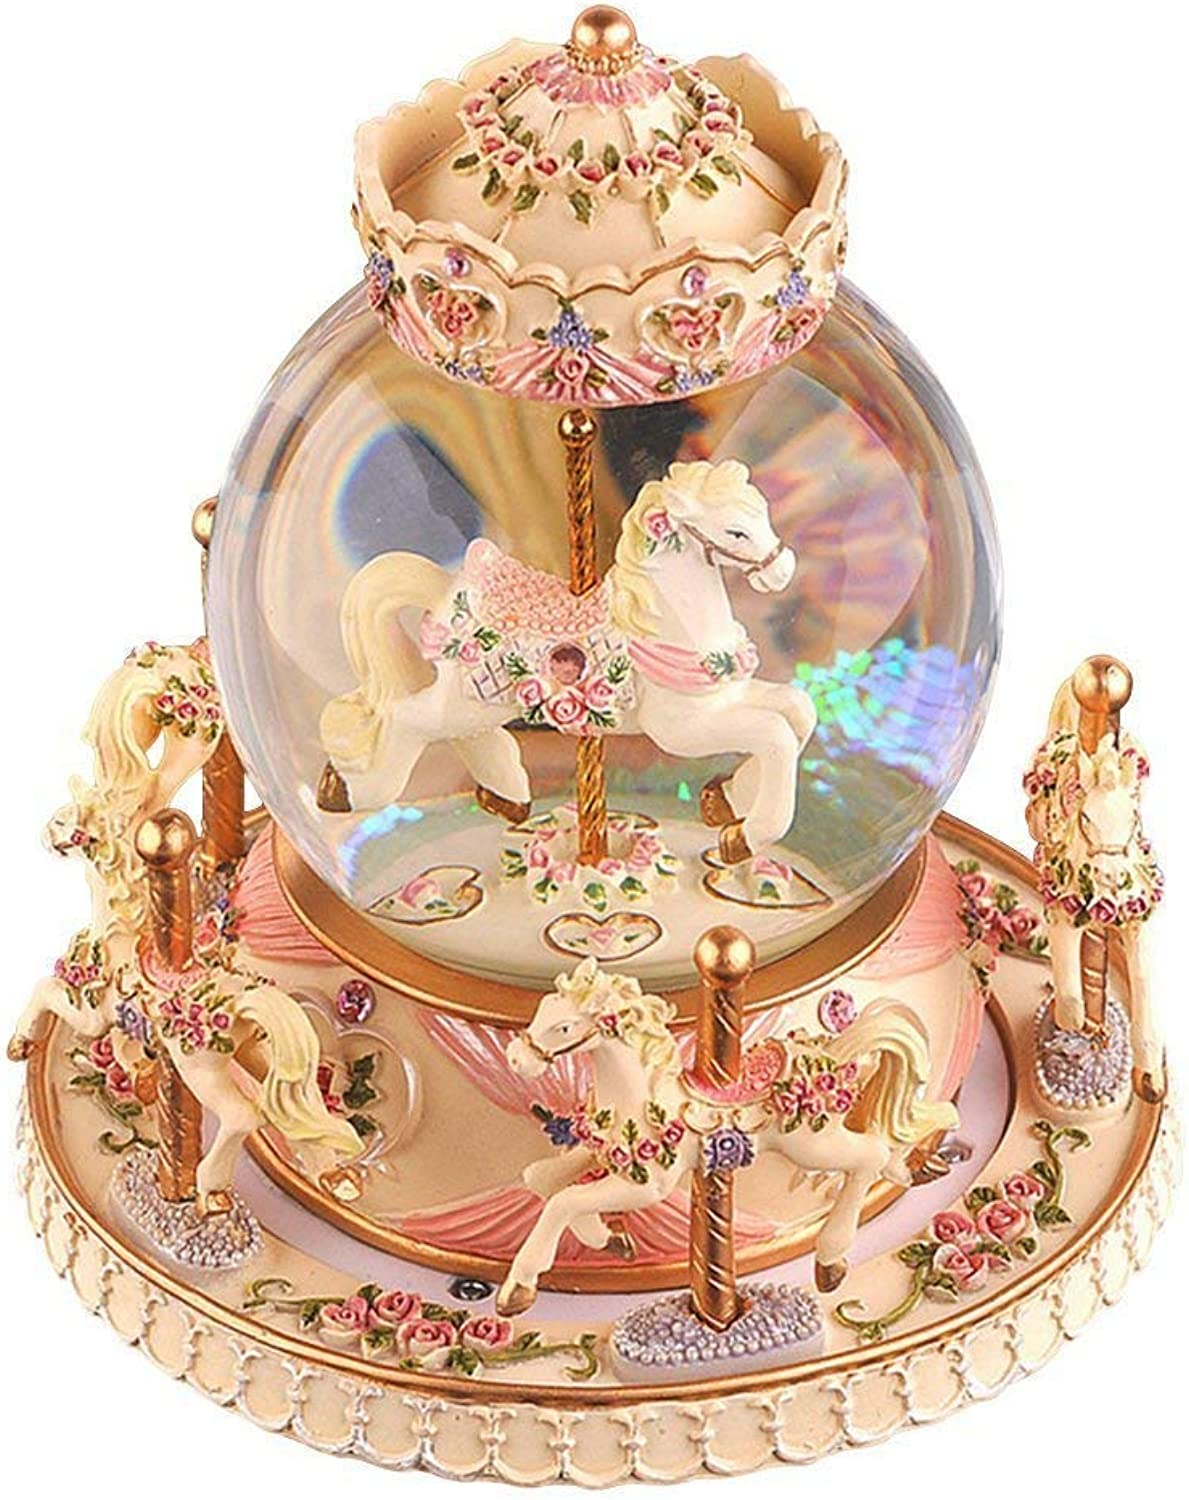 YOUDirect redate Music Box Carousel Crystal Ball Snow Globe with Castle in The Sky Tune and Light Up color Changing Perfect for Birthday Gift Valentine's Day (Warm Yellow)